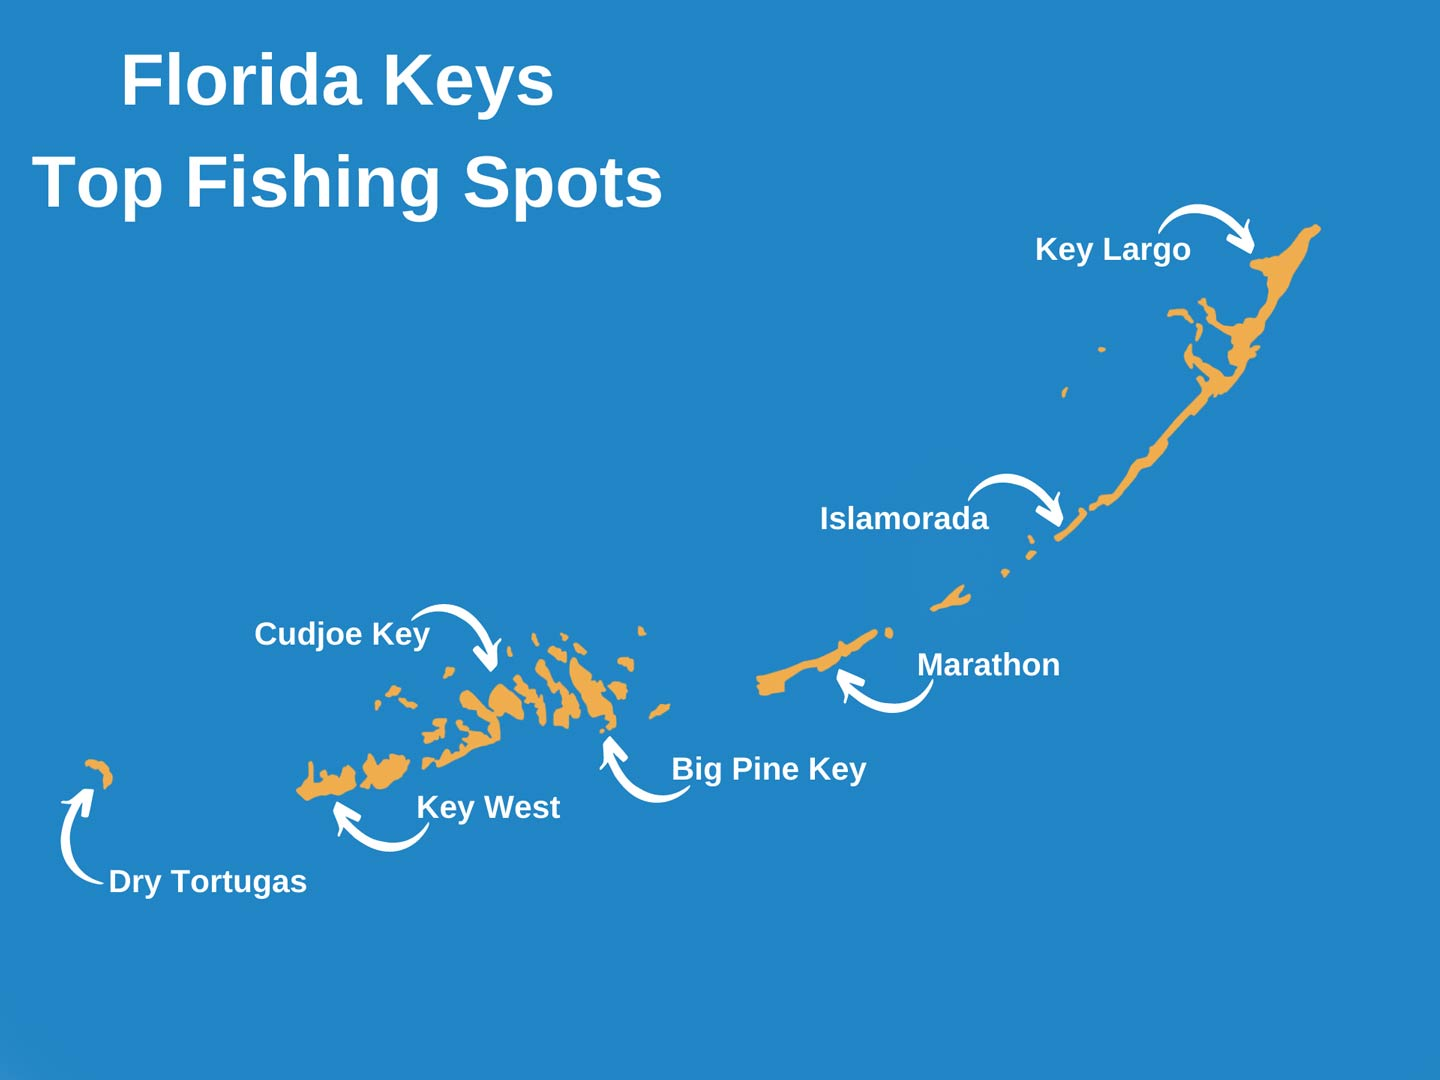 An infographic showing a map of the Florida Keys with the top places to go fishing including Key Largo, Islamorada, Marathon, Big Pine Key, Cudjoe Key, Key West, and Dry Tortugas